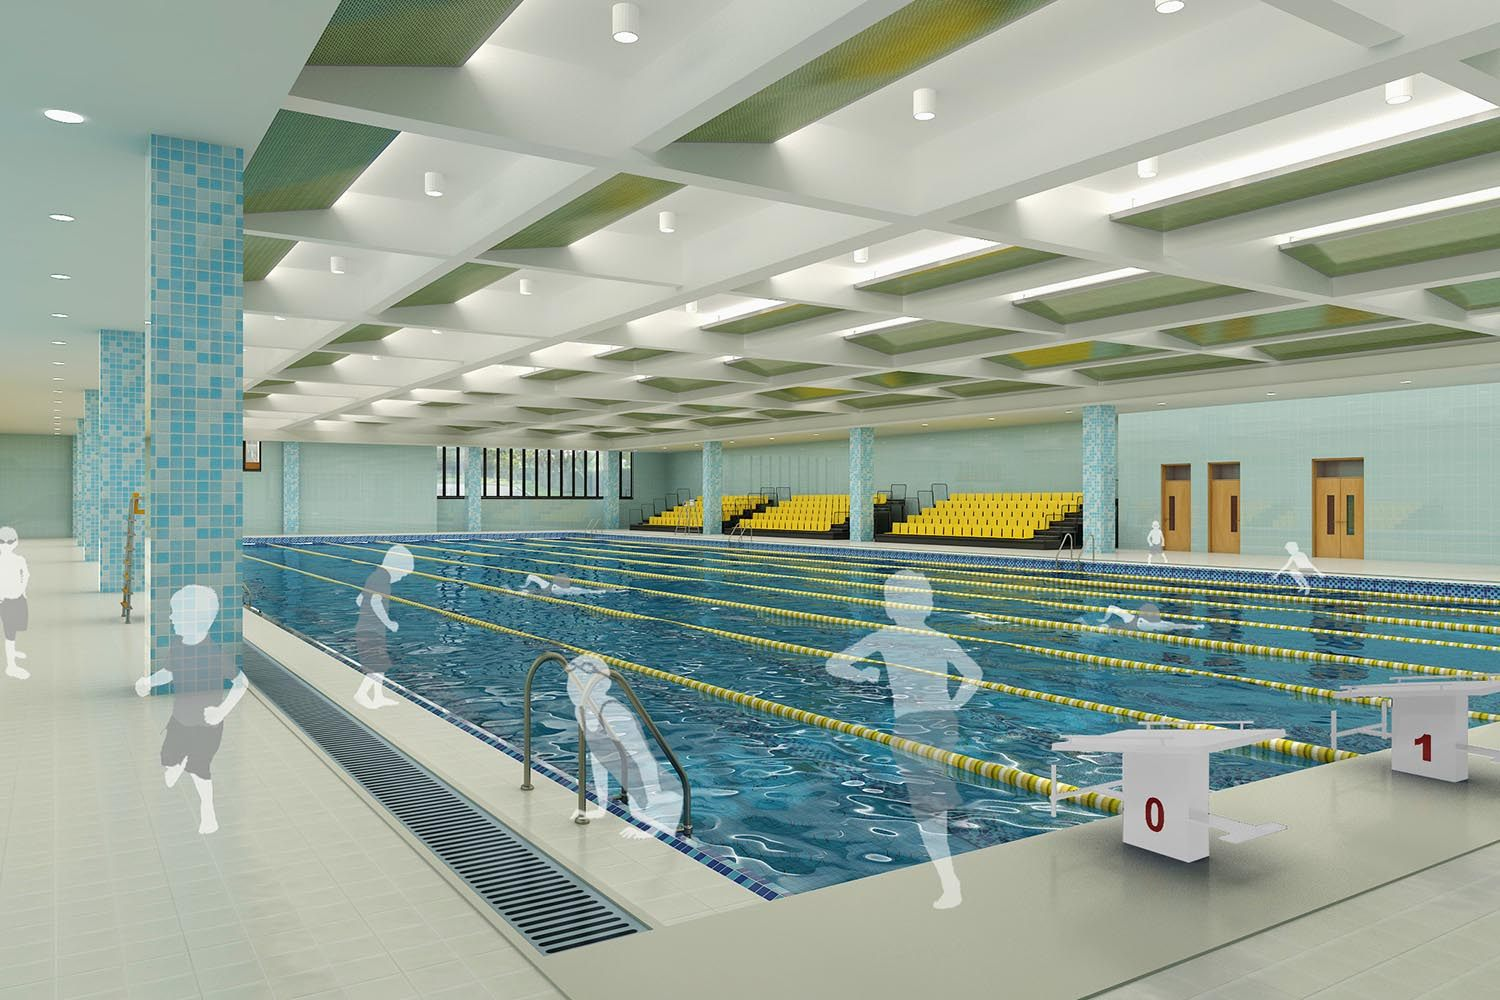 The swimming pool at Shanghai Huaer Collegiate School